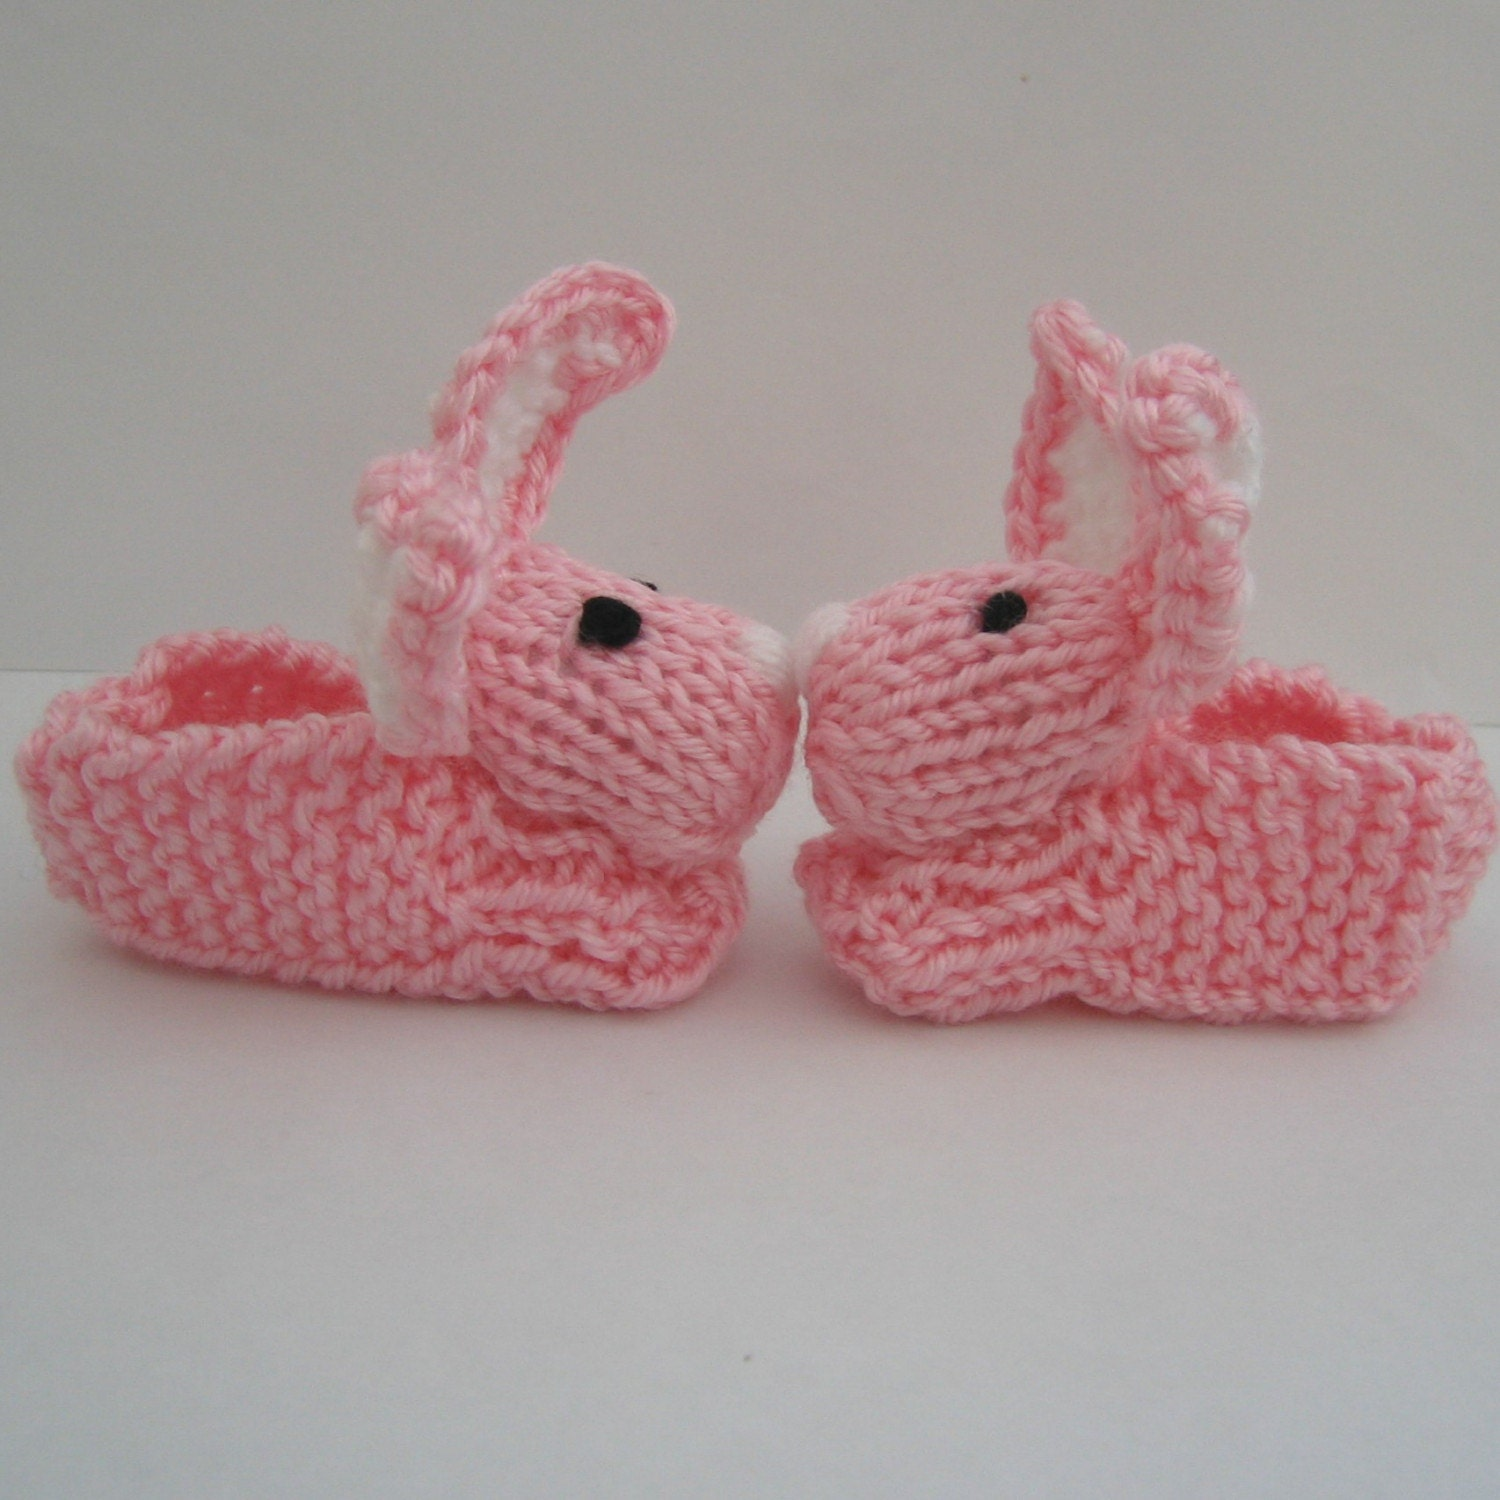 Itty Bitty Baby Pink Bunny Slippers - 0 to 6 month size